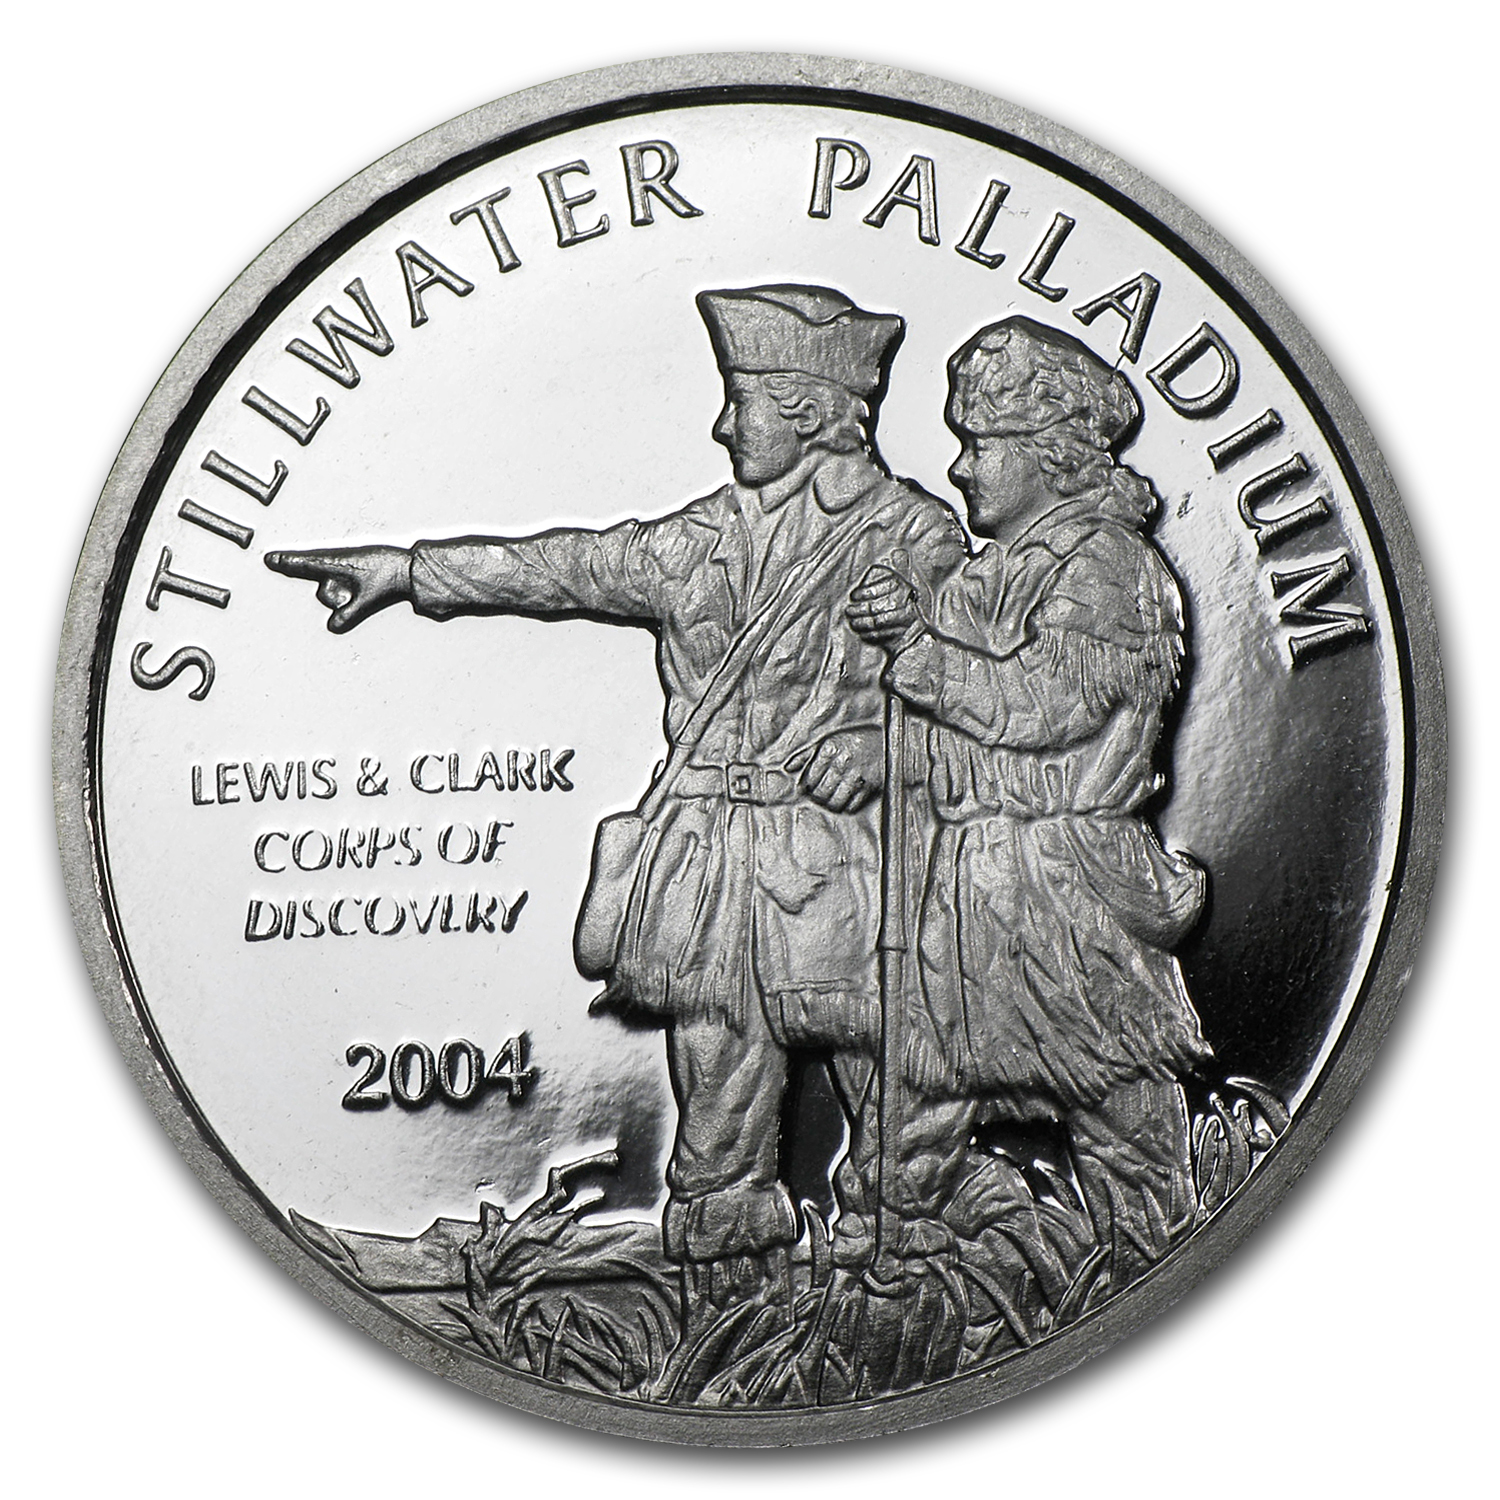 1/2 oz Johnson Matthey Palladium Lewis & Clark Round